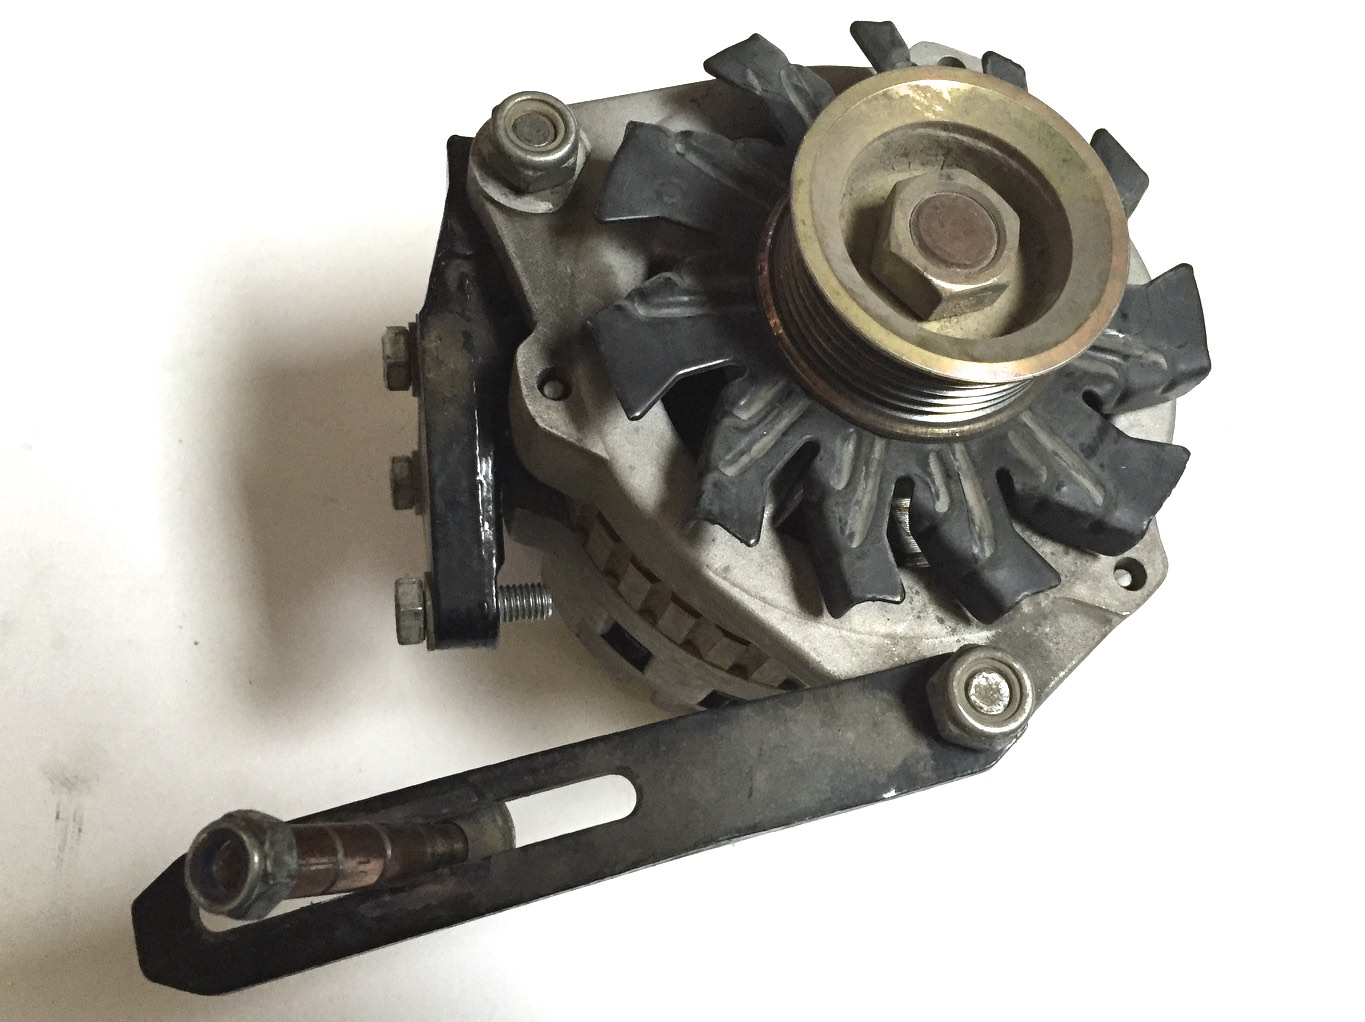 The new alternator with the mounting and adjustment brackets.